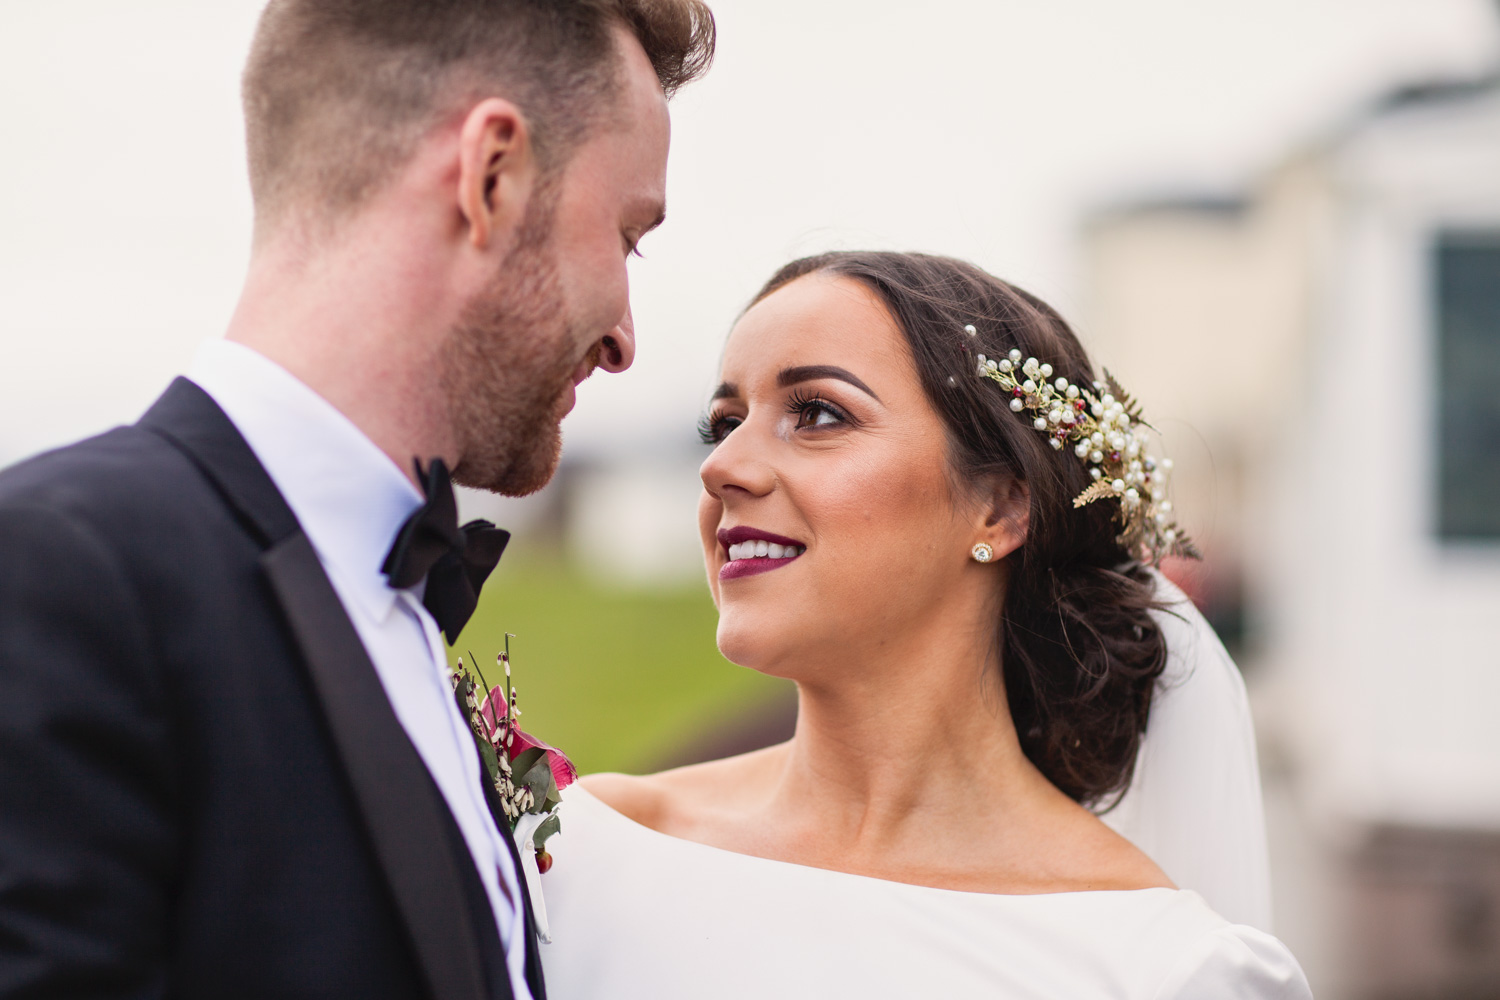 Mark_Barnes_Northern_Ireland_wedding_photographer_Innishowen_Gateway_Donegal_Wedding_photography_Donegal_wedding_photographer-44.jpg